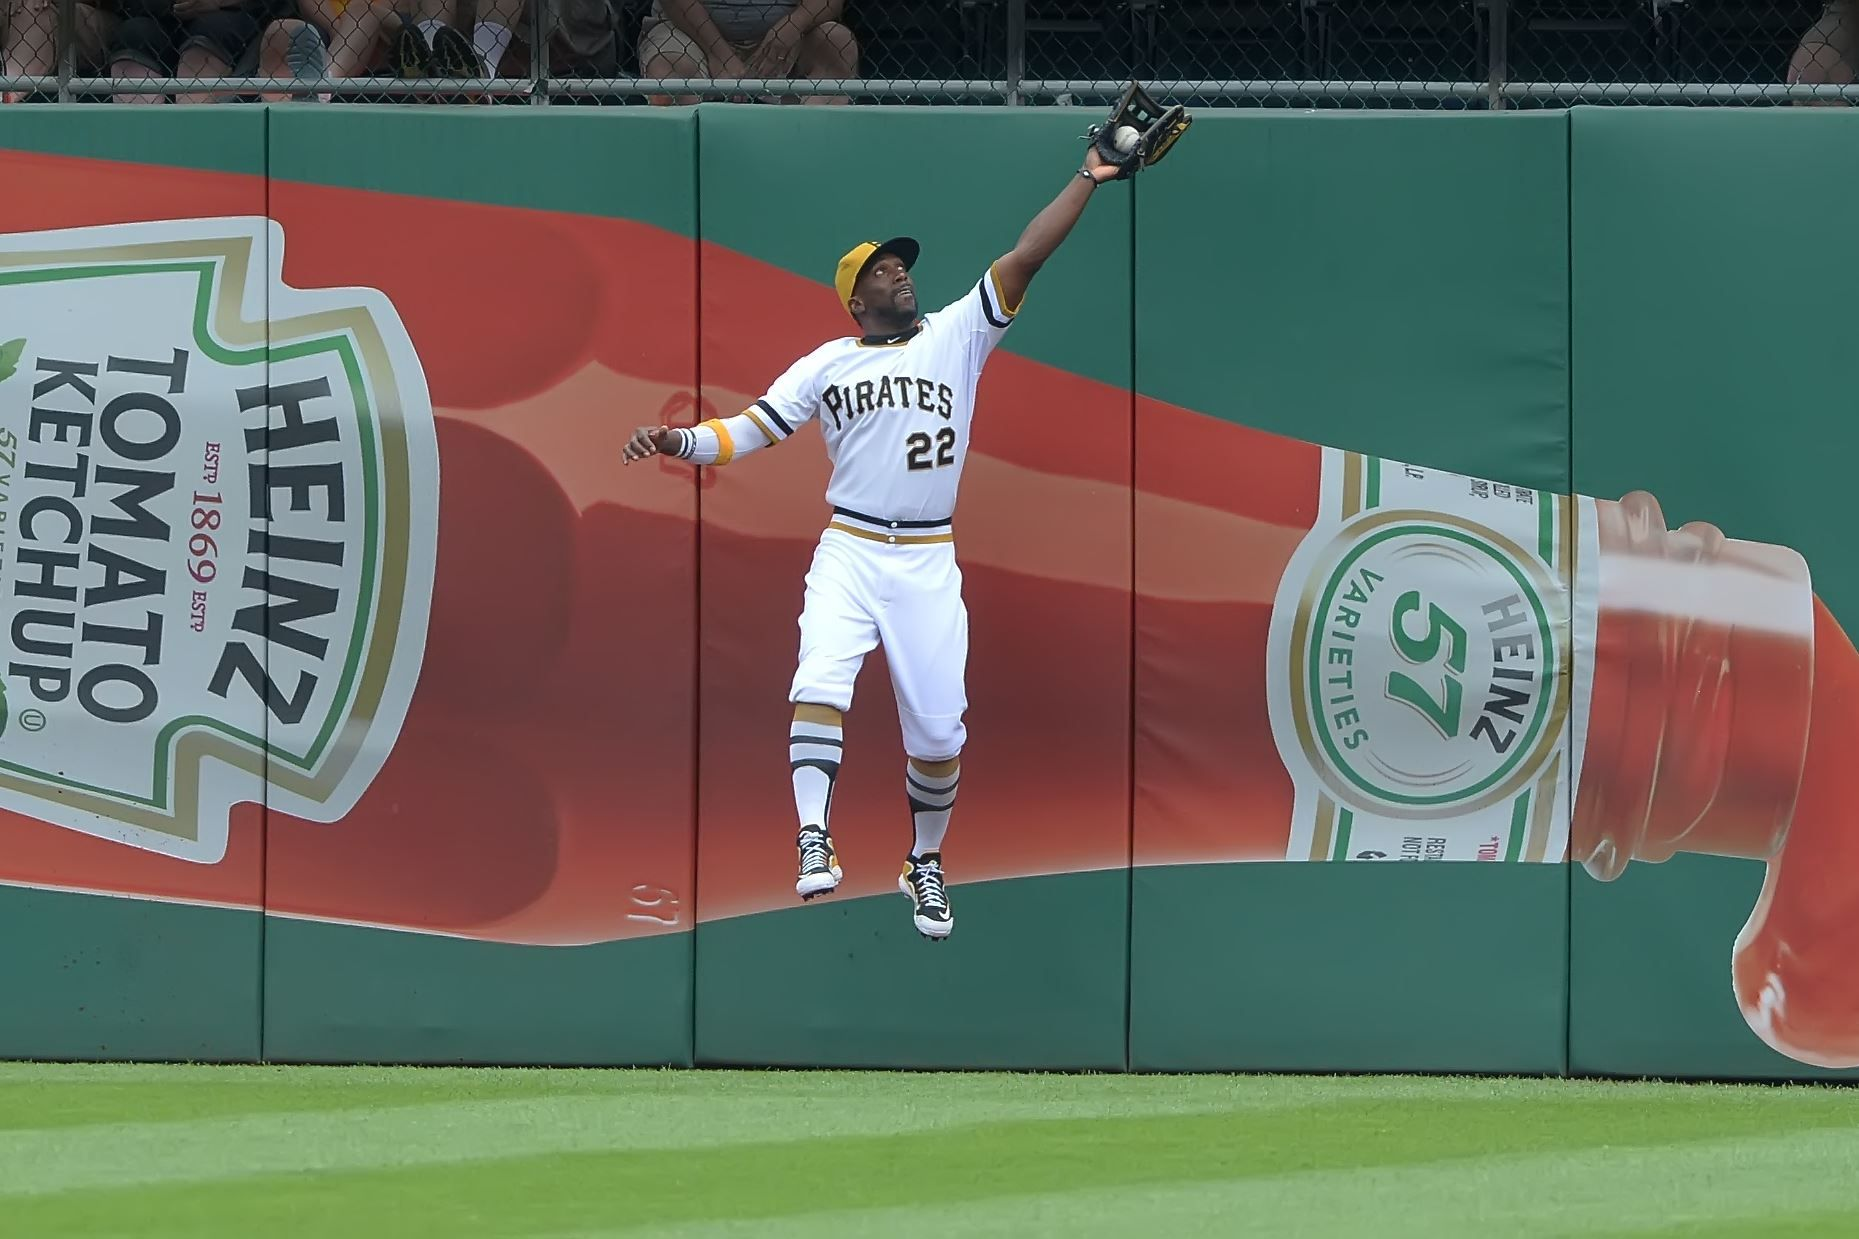 Ron Cook Superb defense bails out Pirates offense in win